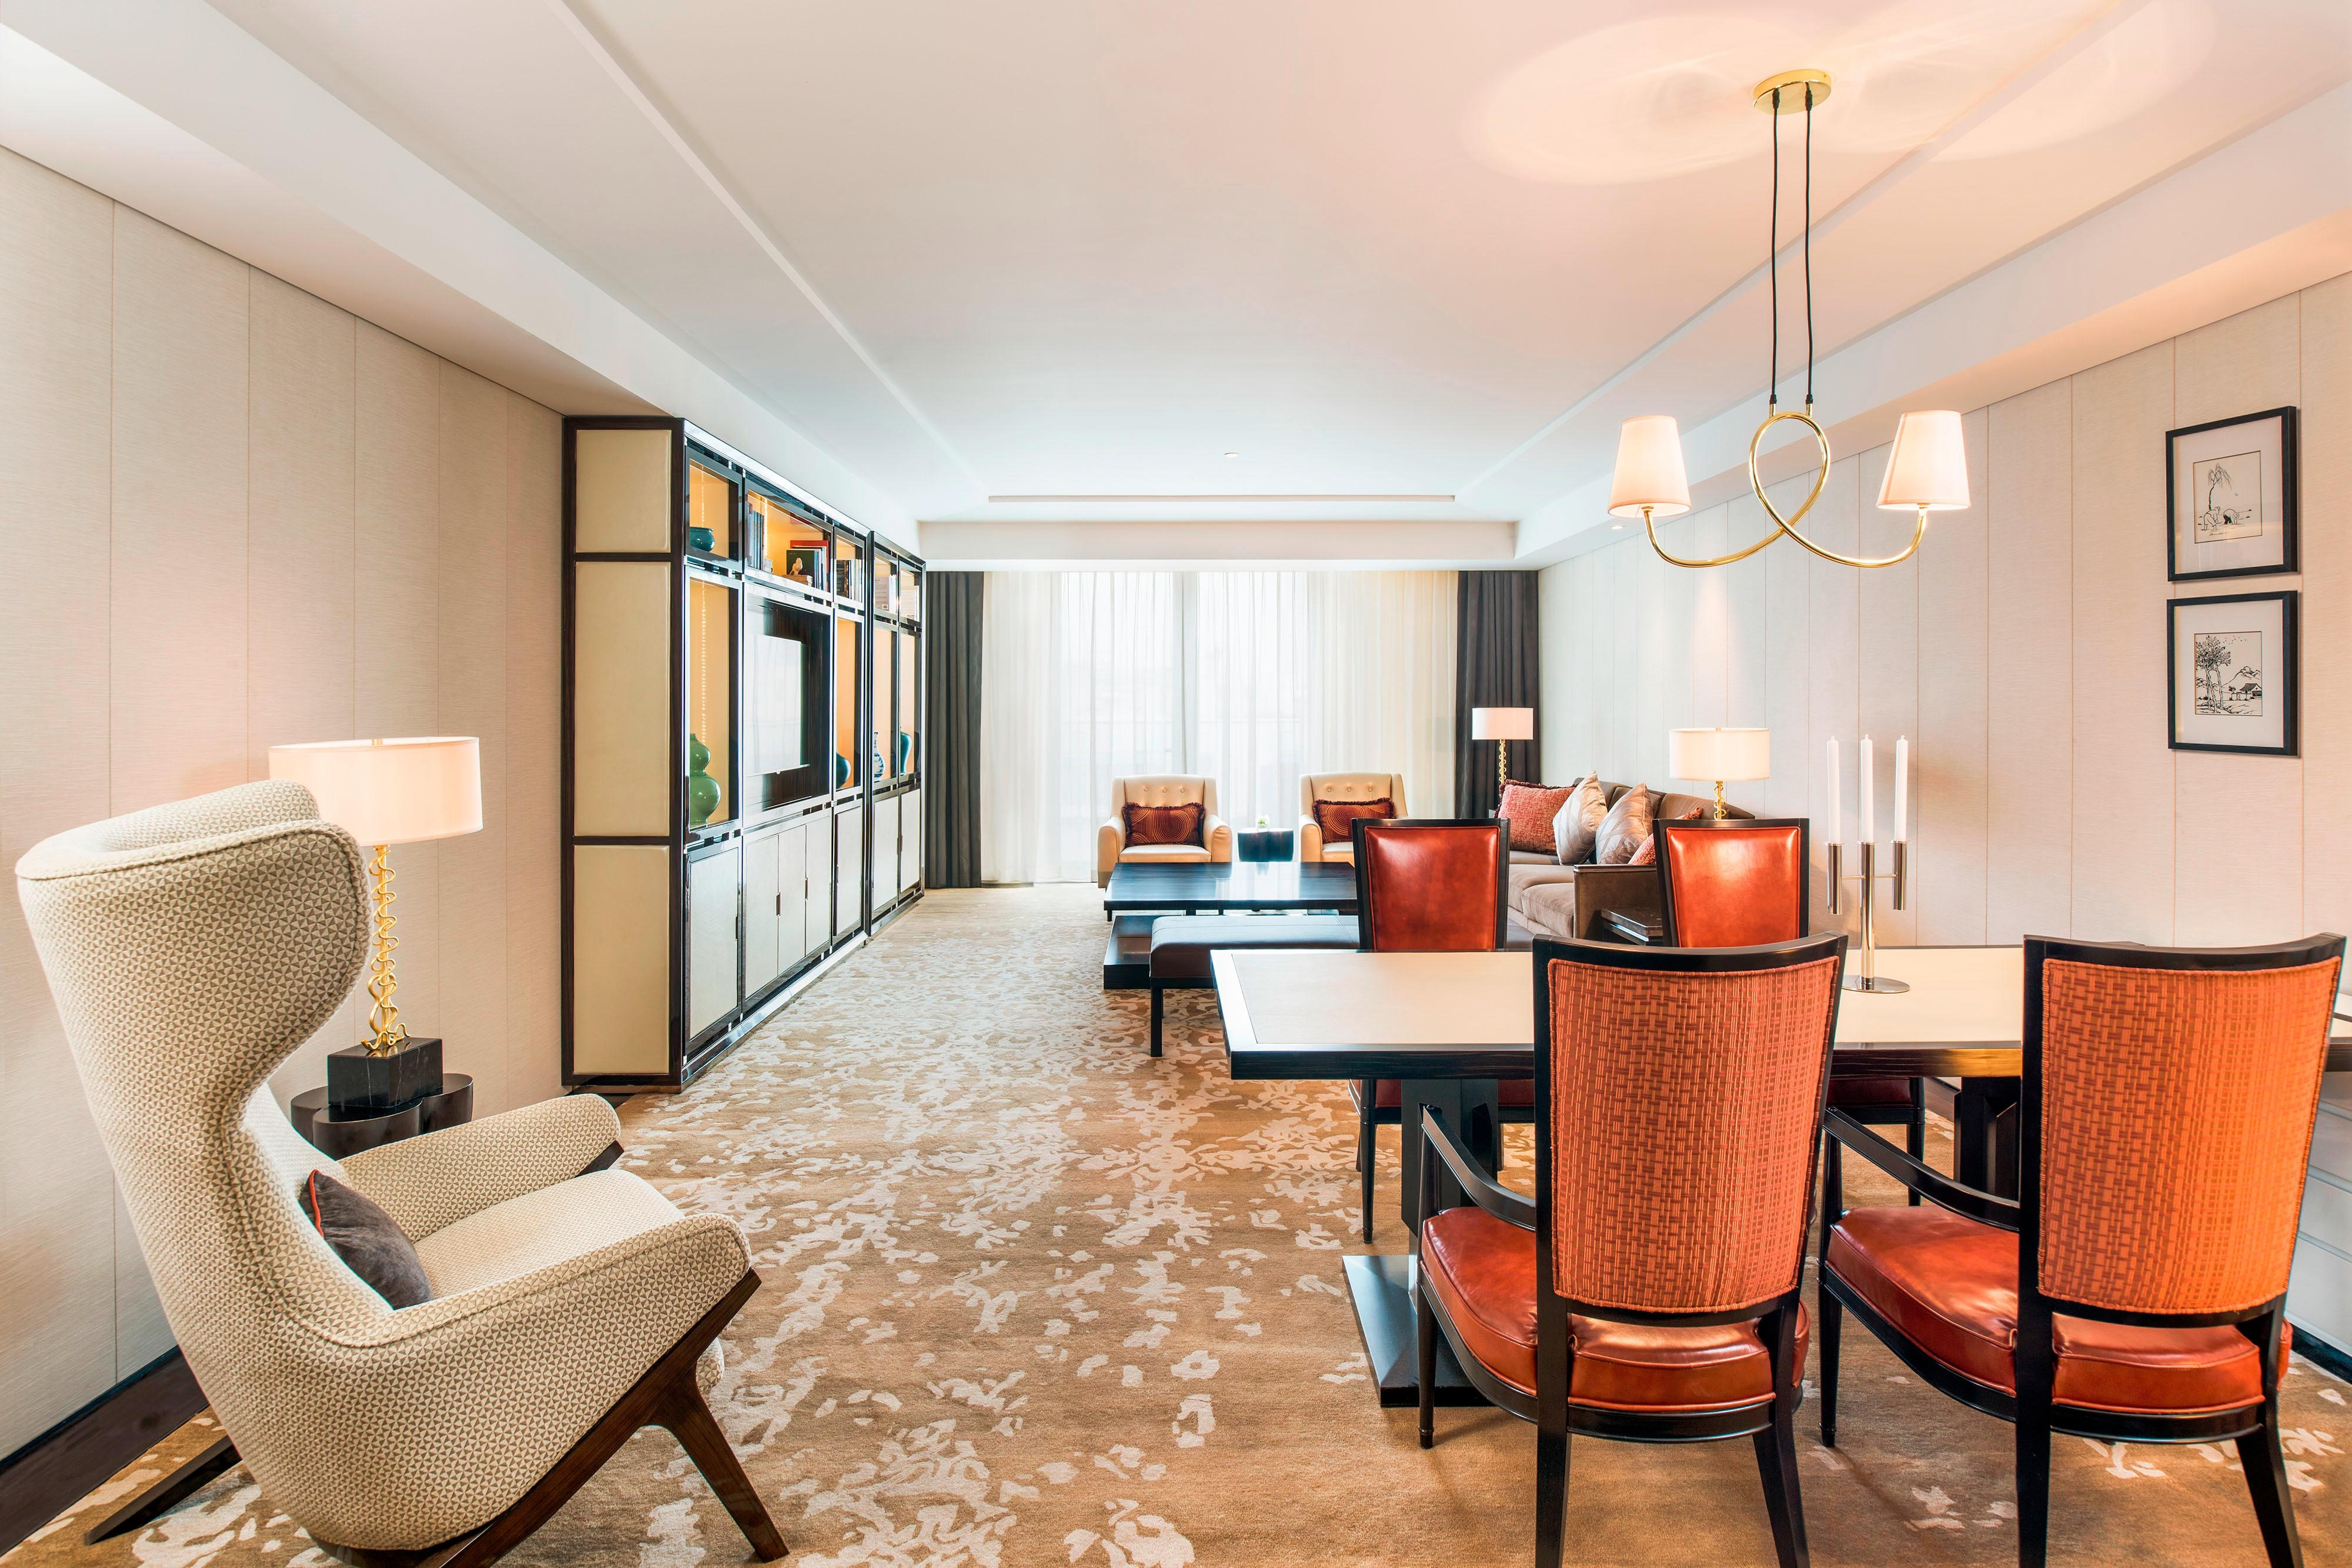 Hotel Rooms & Amenities Grand Mansion Luxury